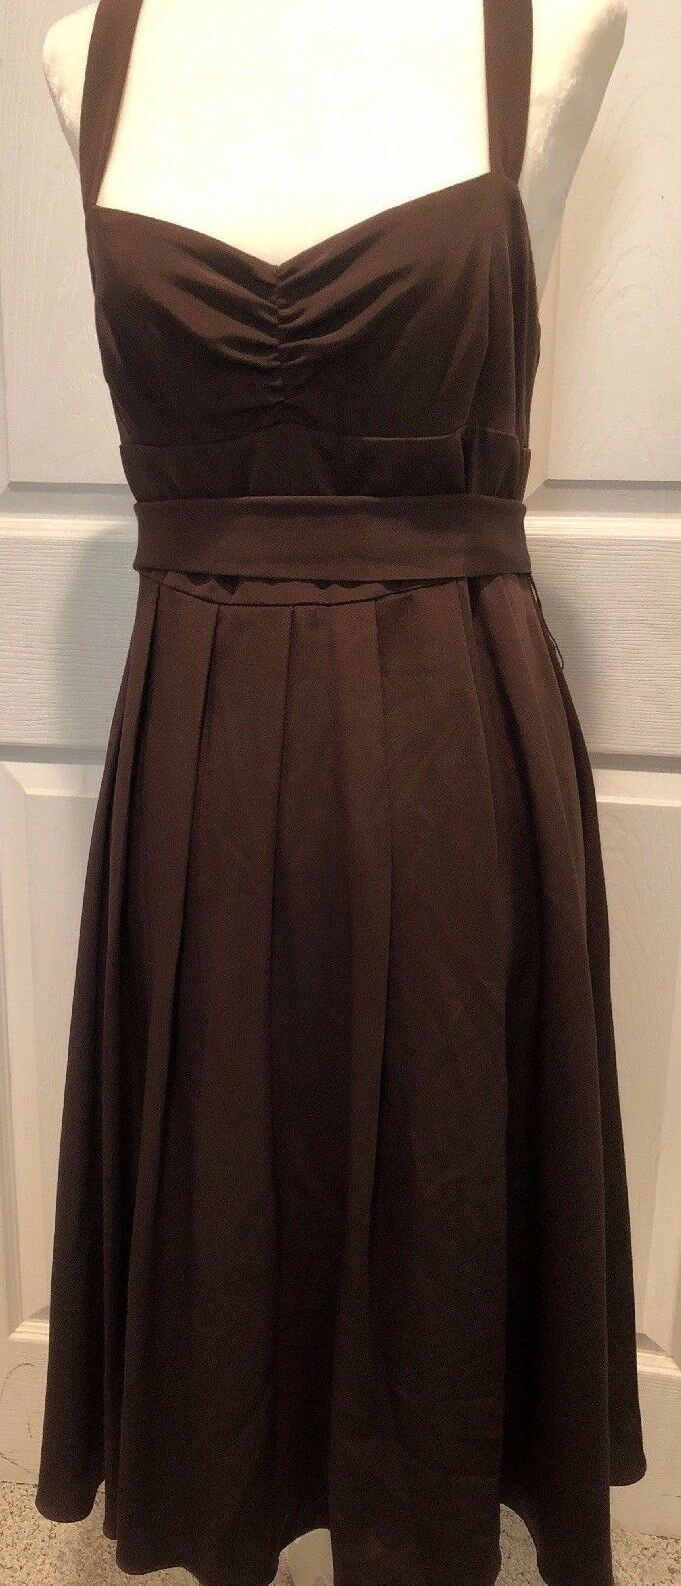 NEW J Crew Silk Tricotine Special Occasion Rebecca Dress Sz 6 Expresso 90745 NWT